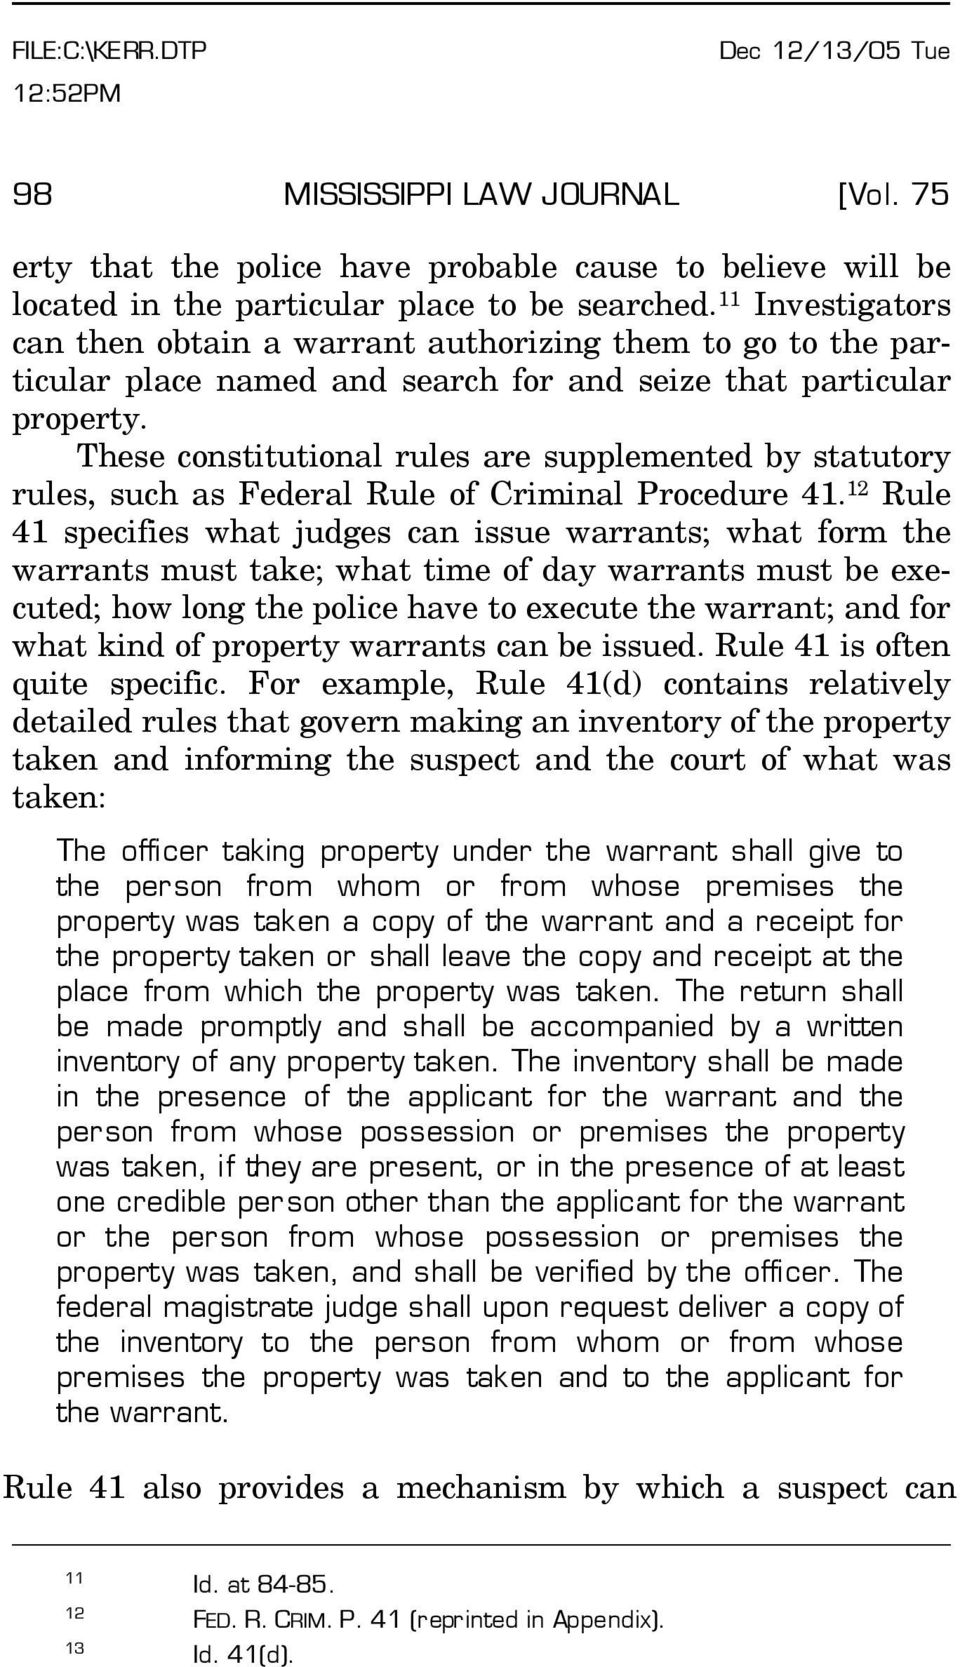 11 Investigators can then obtain a warrant authorizing them to go to the particular place named and search for and seize that particular property.